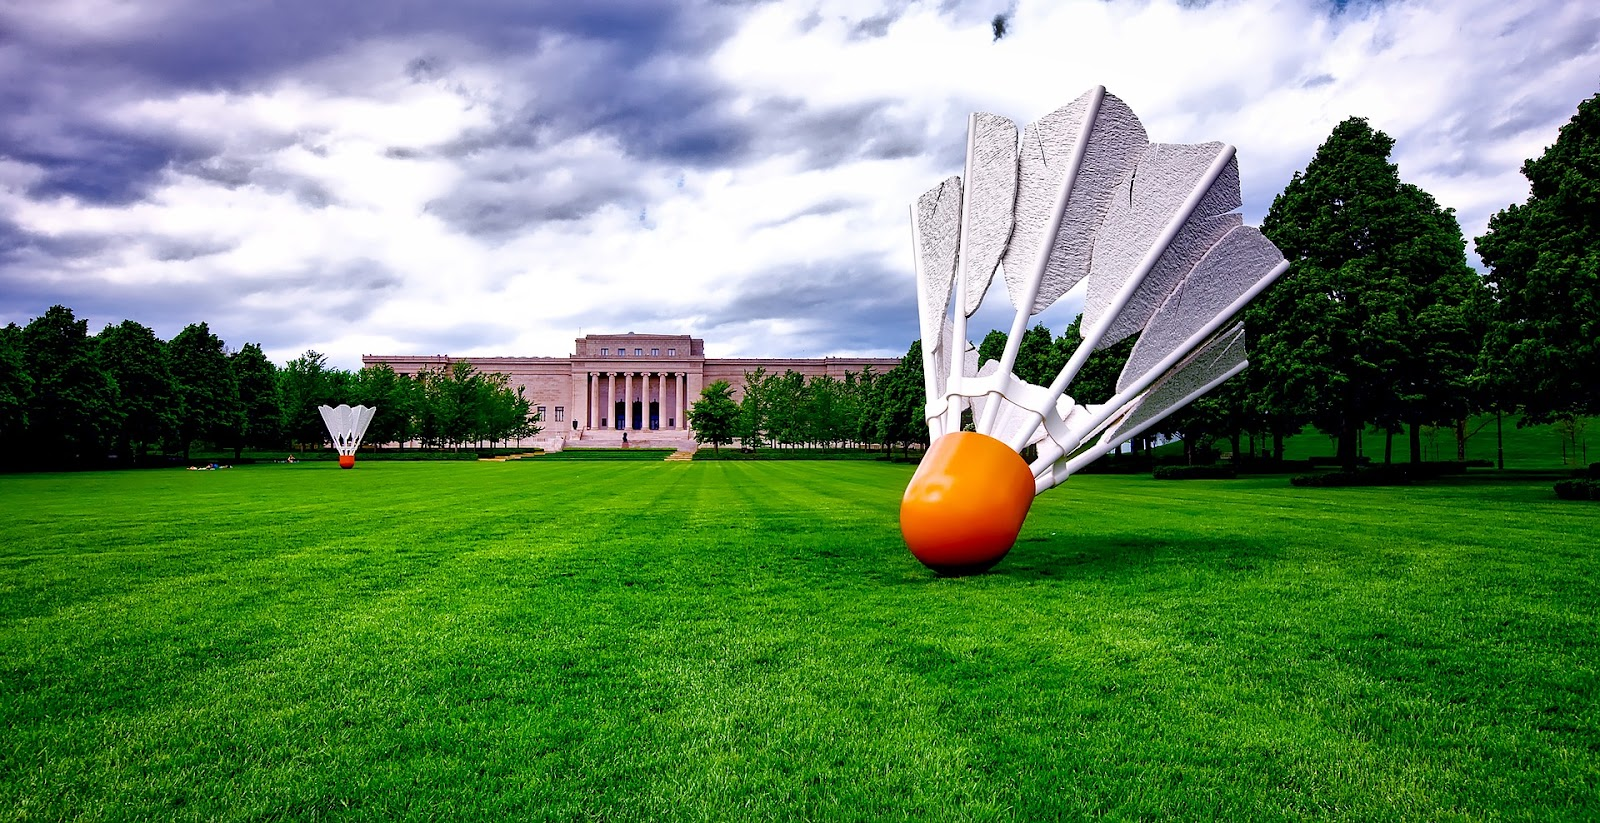 18 foot 5500 pound badminton shuttlecocks dot the lawn of a museum in Kanas City, Missouri.